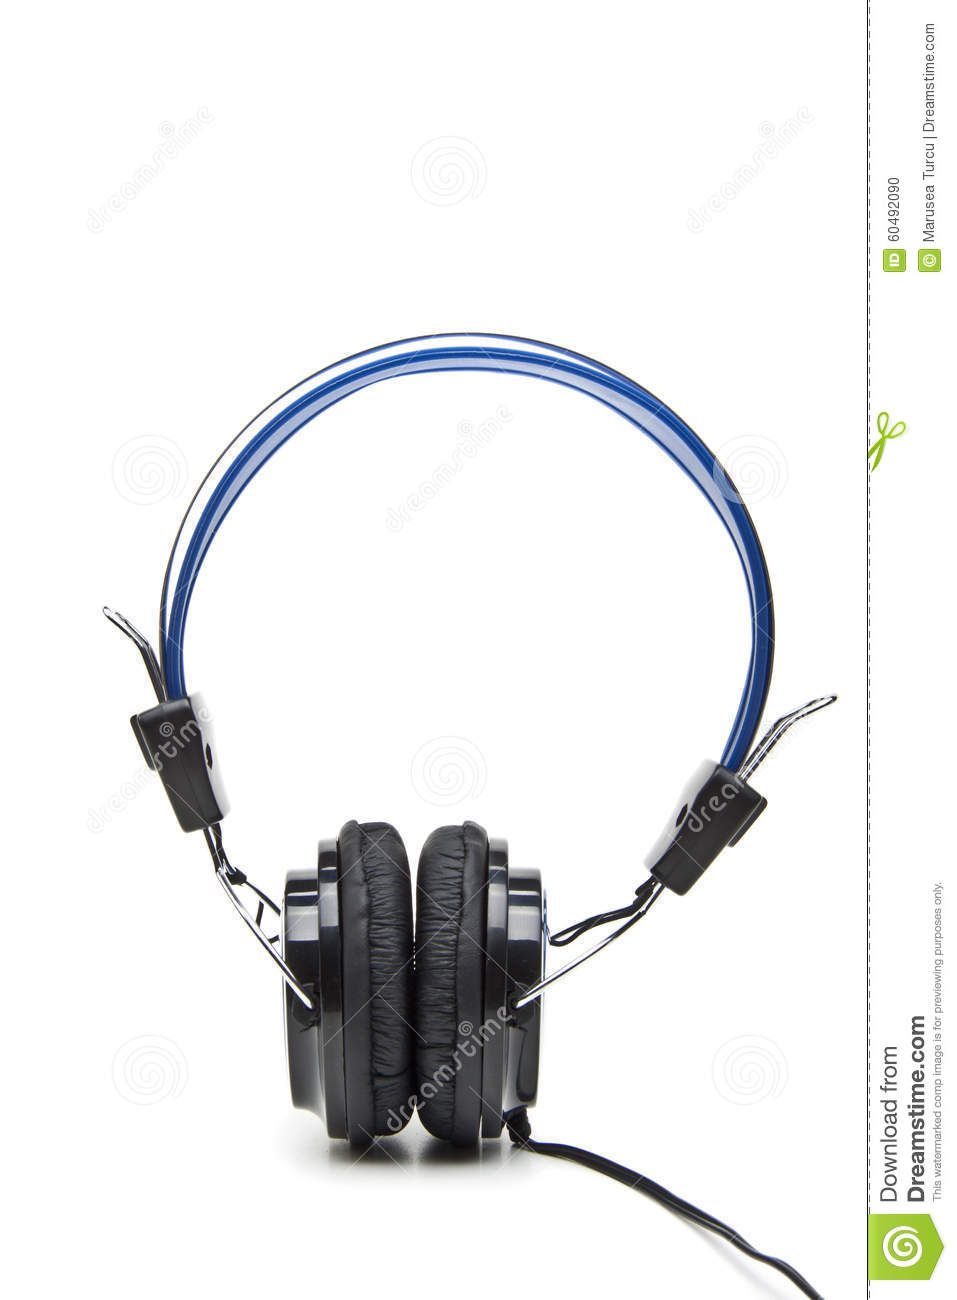 Plastic Wireless Headphones Royalty-Free Stock Photo